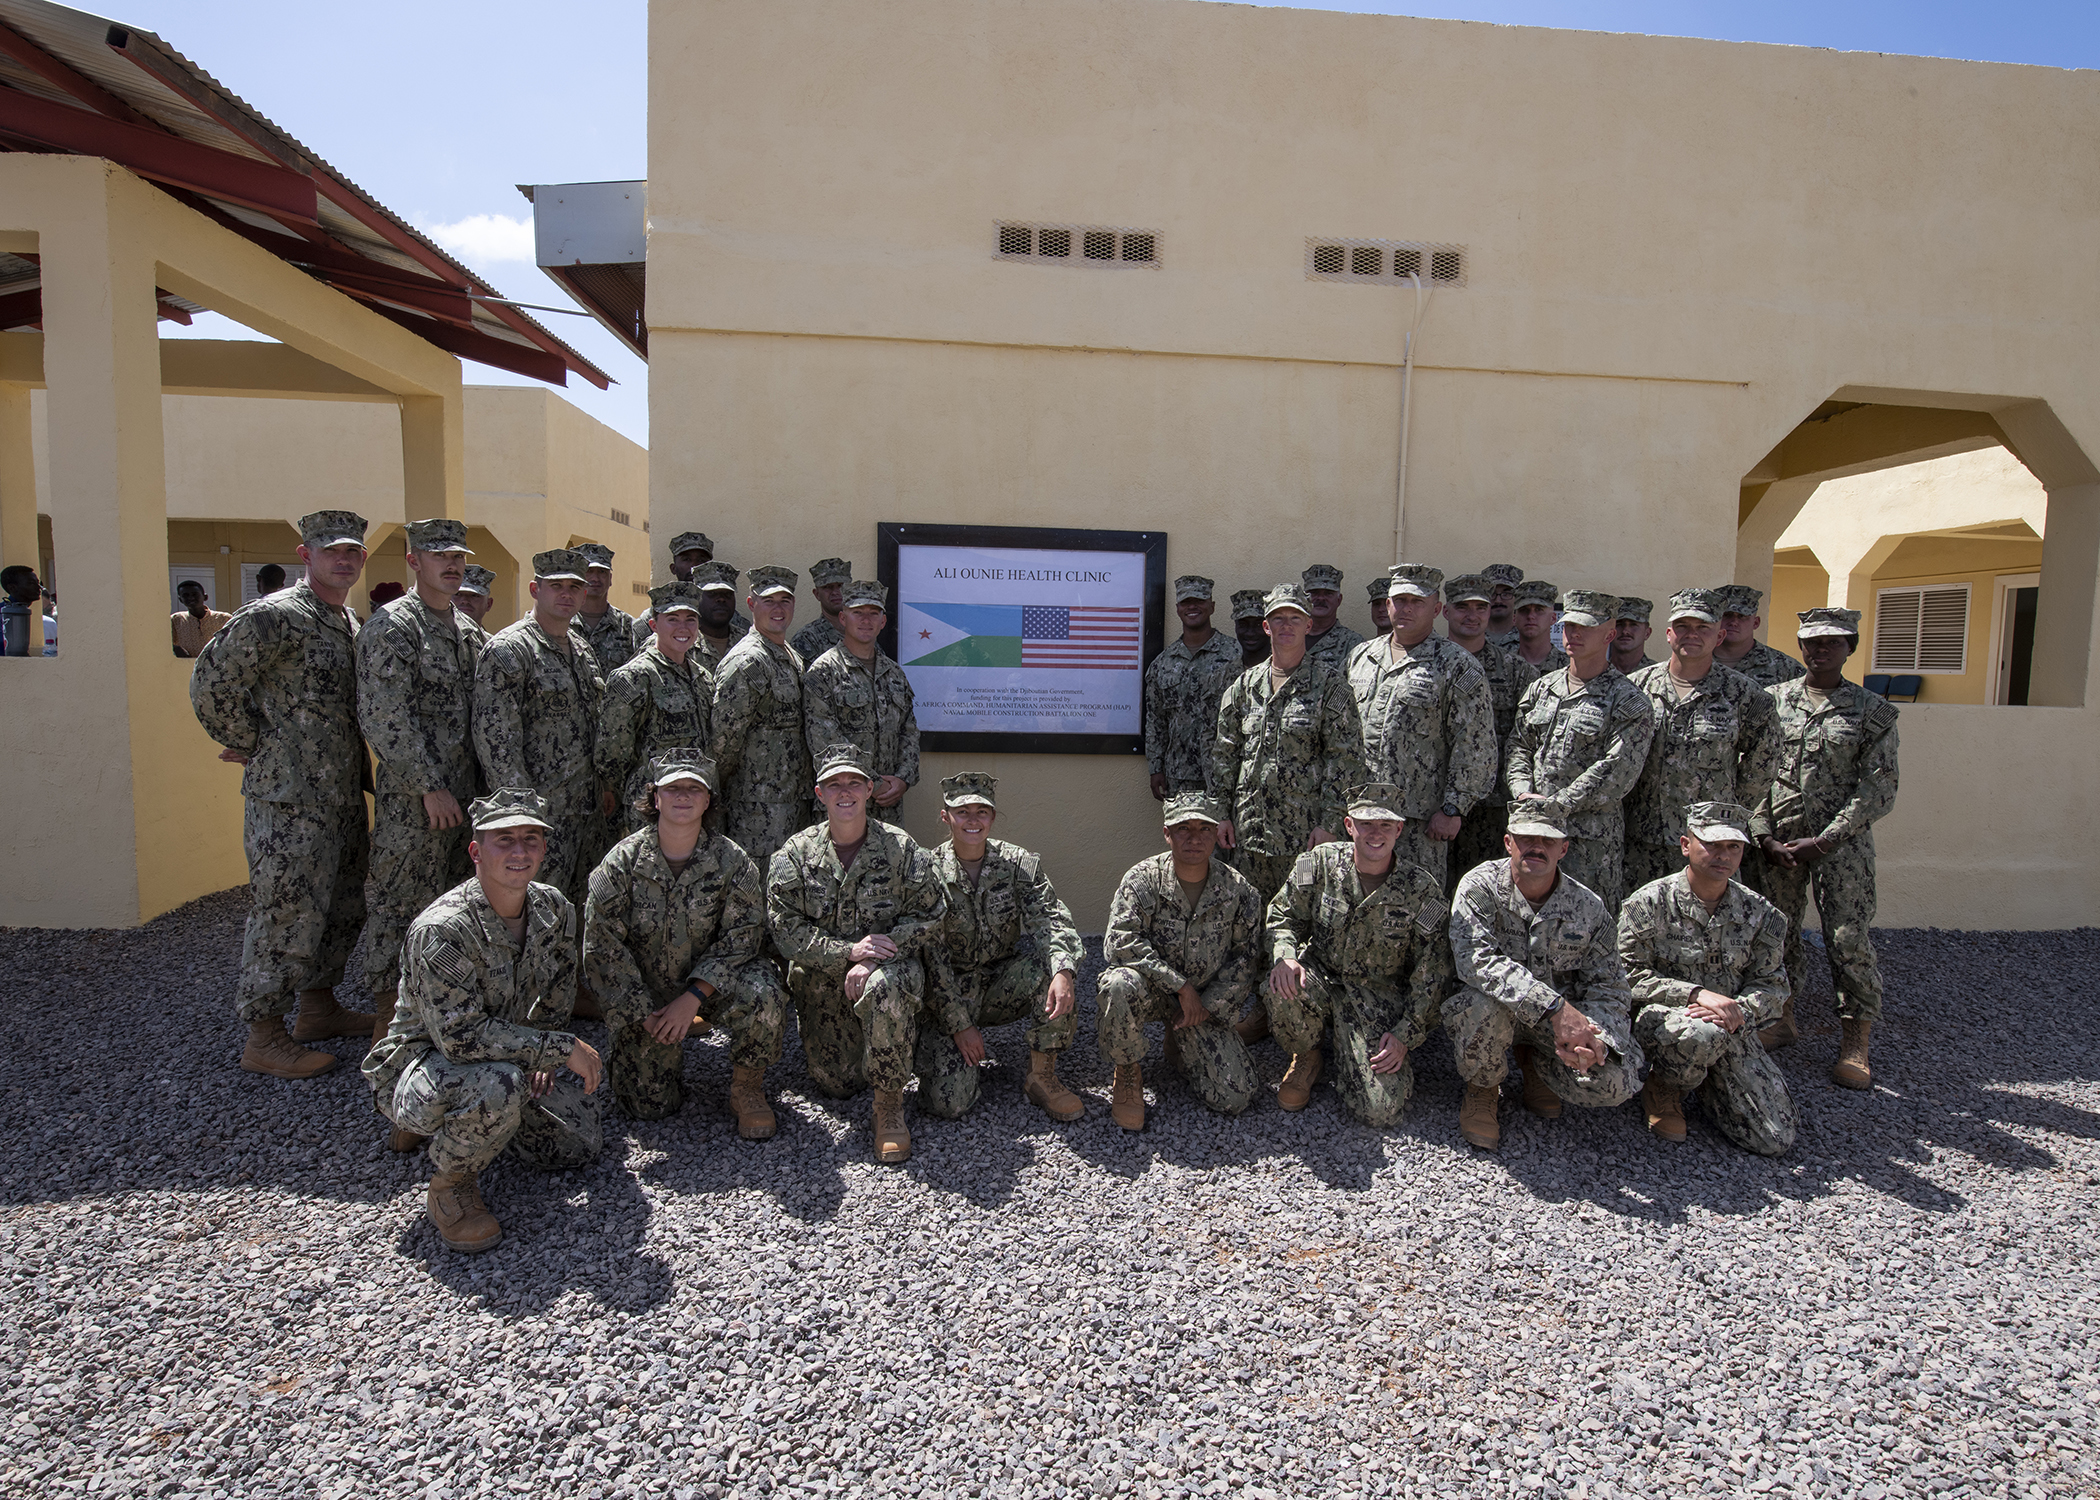 U.S. Navy Seabees from Naval Mobile Construction Battalion 1, assigned to Combined Joint Task Force-Horn of Africa, pose for a group photo during the Ali Oune Medical Clinic ribbon cutting ceremony in Ali Oune, Djibouti, Jan. 31, 2019. The clinic, which the Seabees have worked on for five months, is intended to enhance the Ministry of Health for Djibouti's ability to provide basic medical, birth and after care to the Ali Oune village and its more than 1,000 residents and rural neighbors. (U.S. Air Force photo by Tech. Sgt. Shawn Nickel)